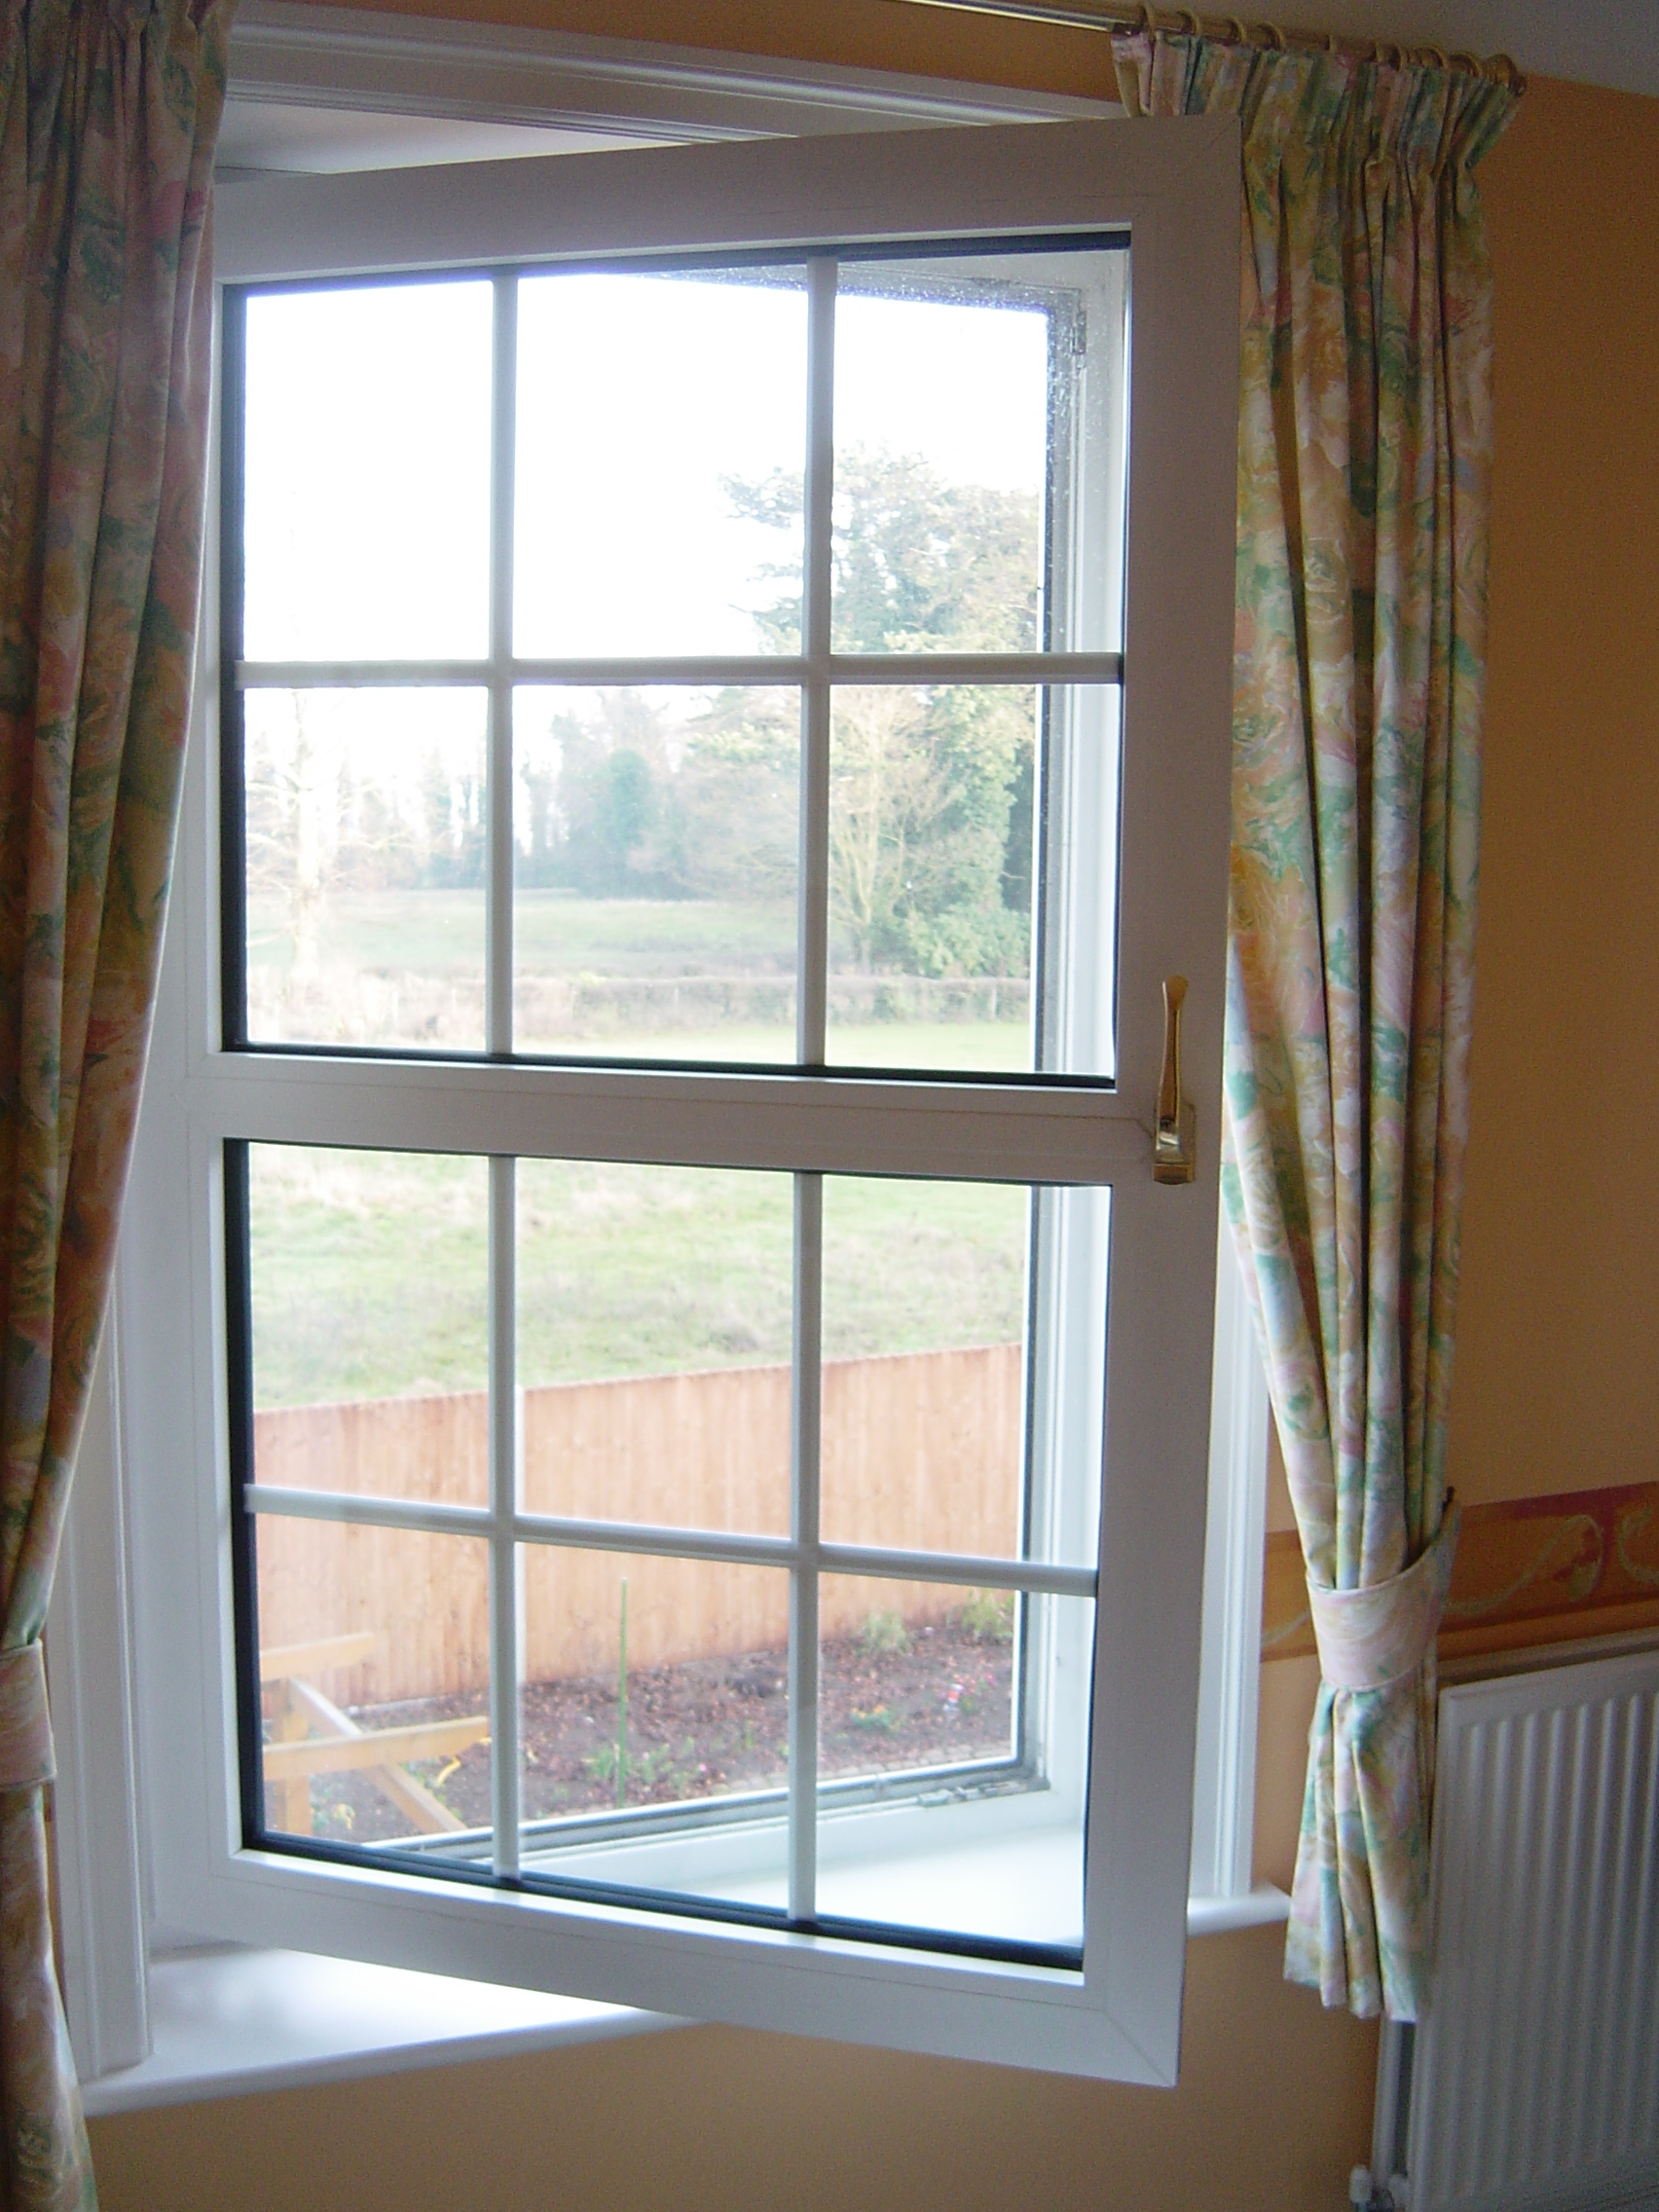 Replacement windows essex upvc windows double glazing for Replacement upvc windows